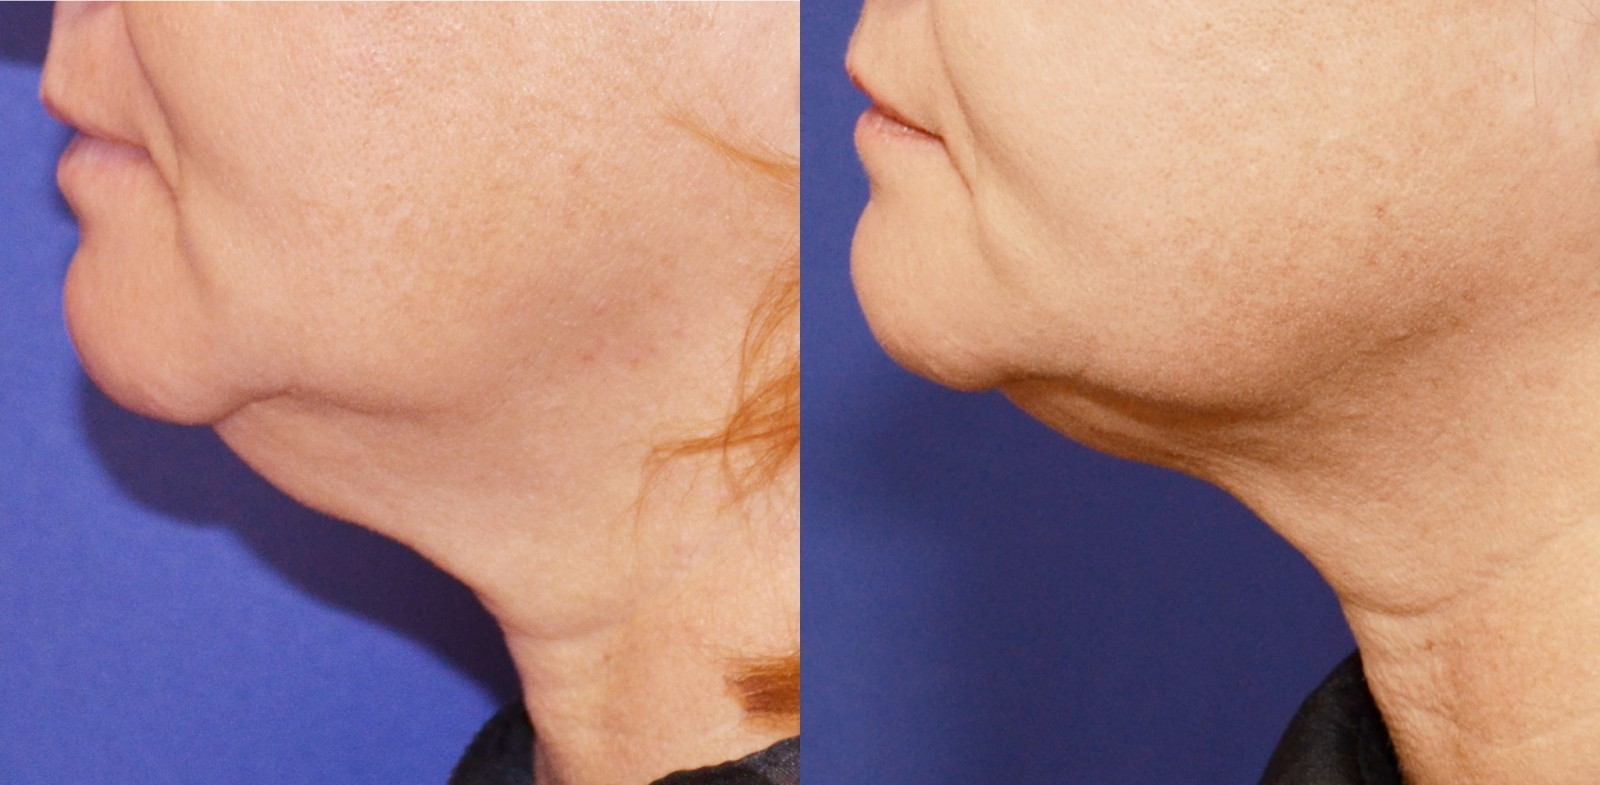 Body contouring Ultherapy before and after